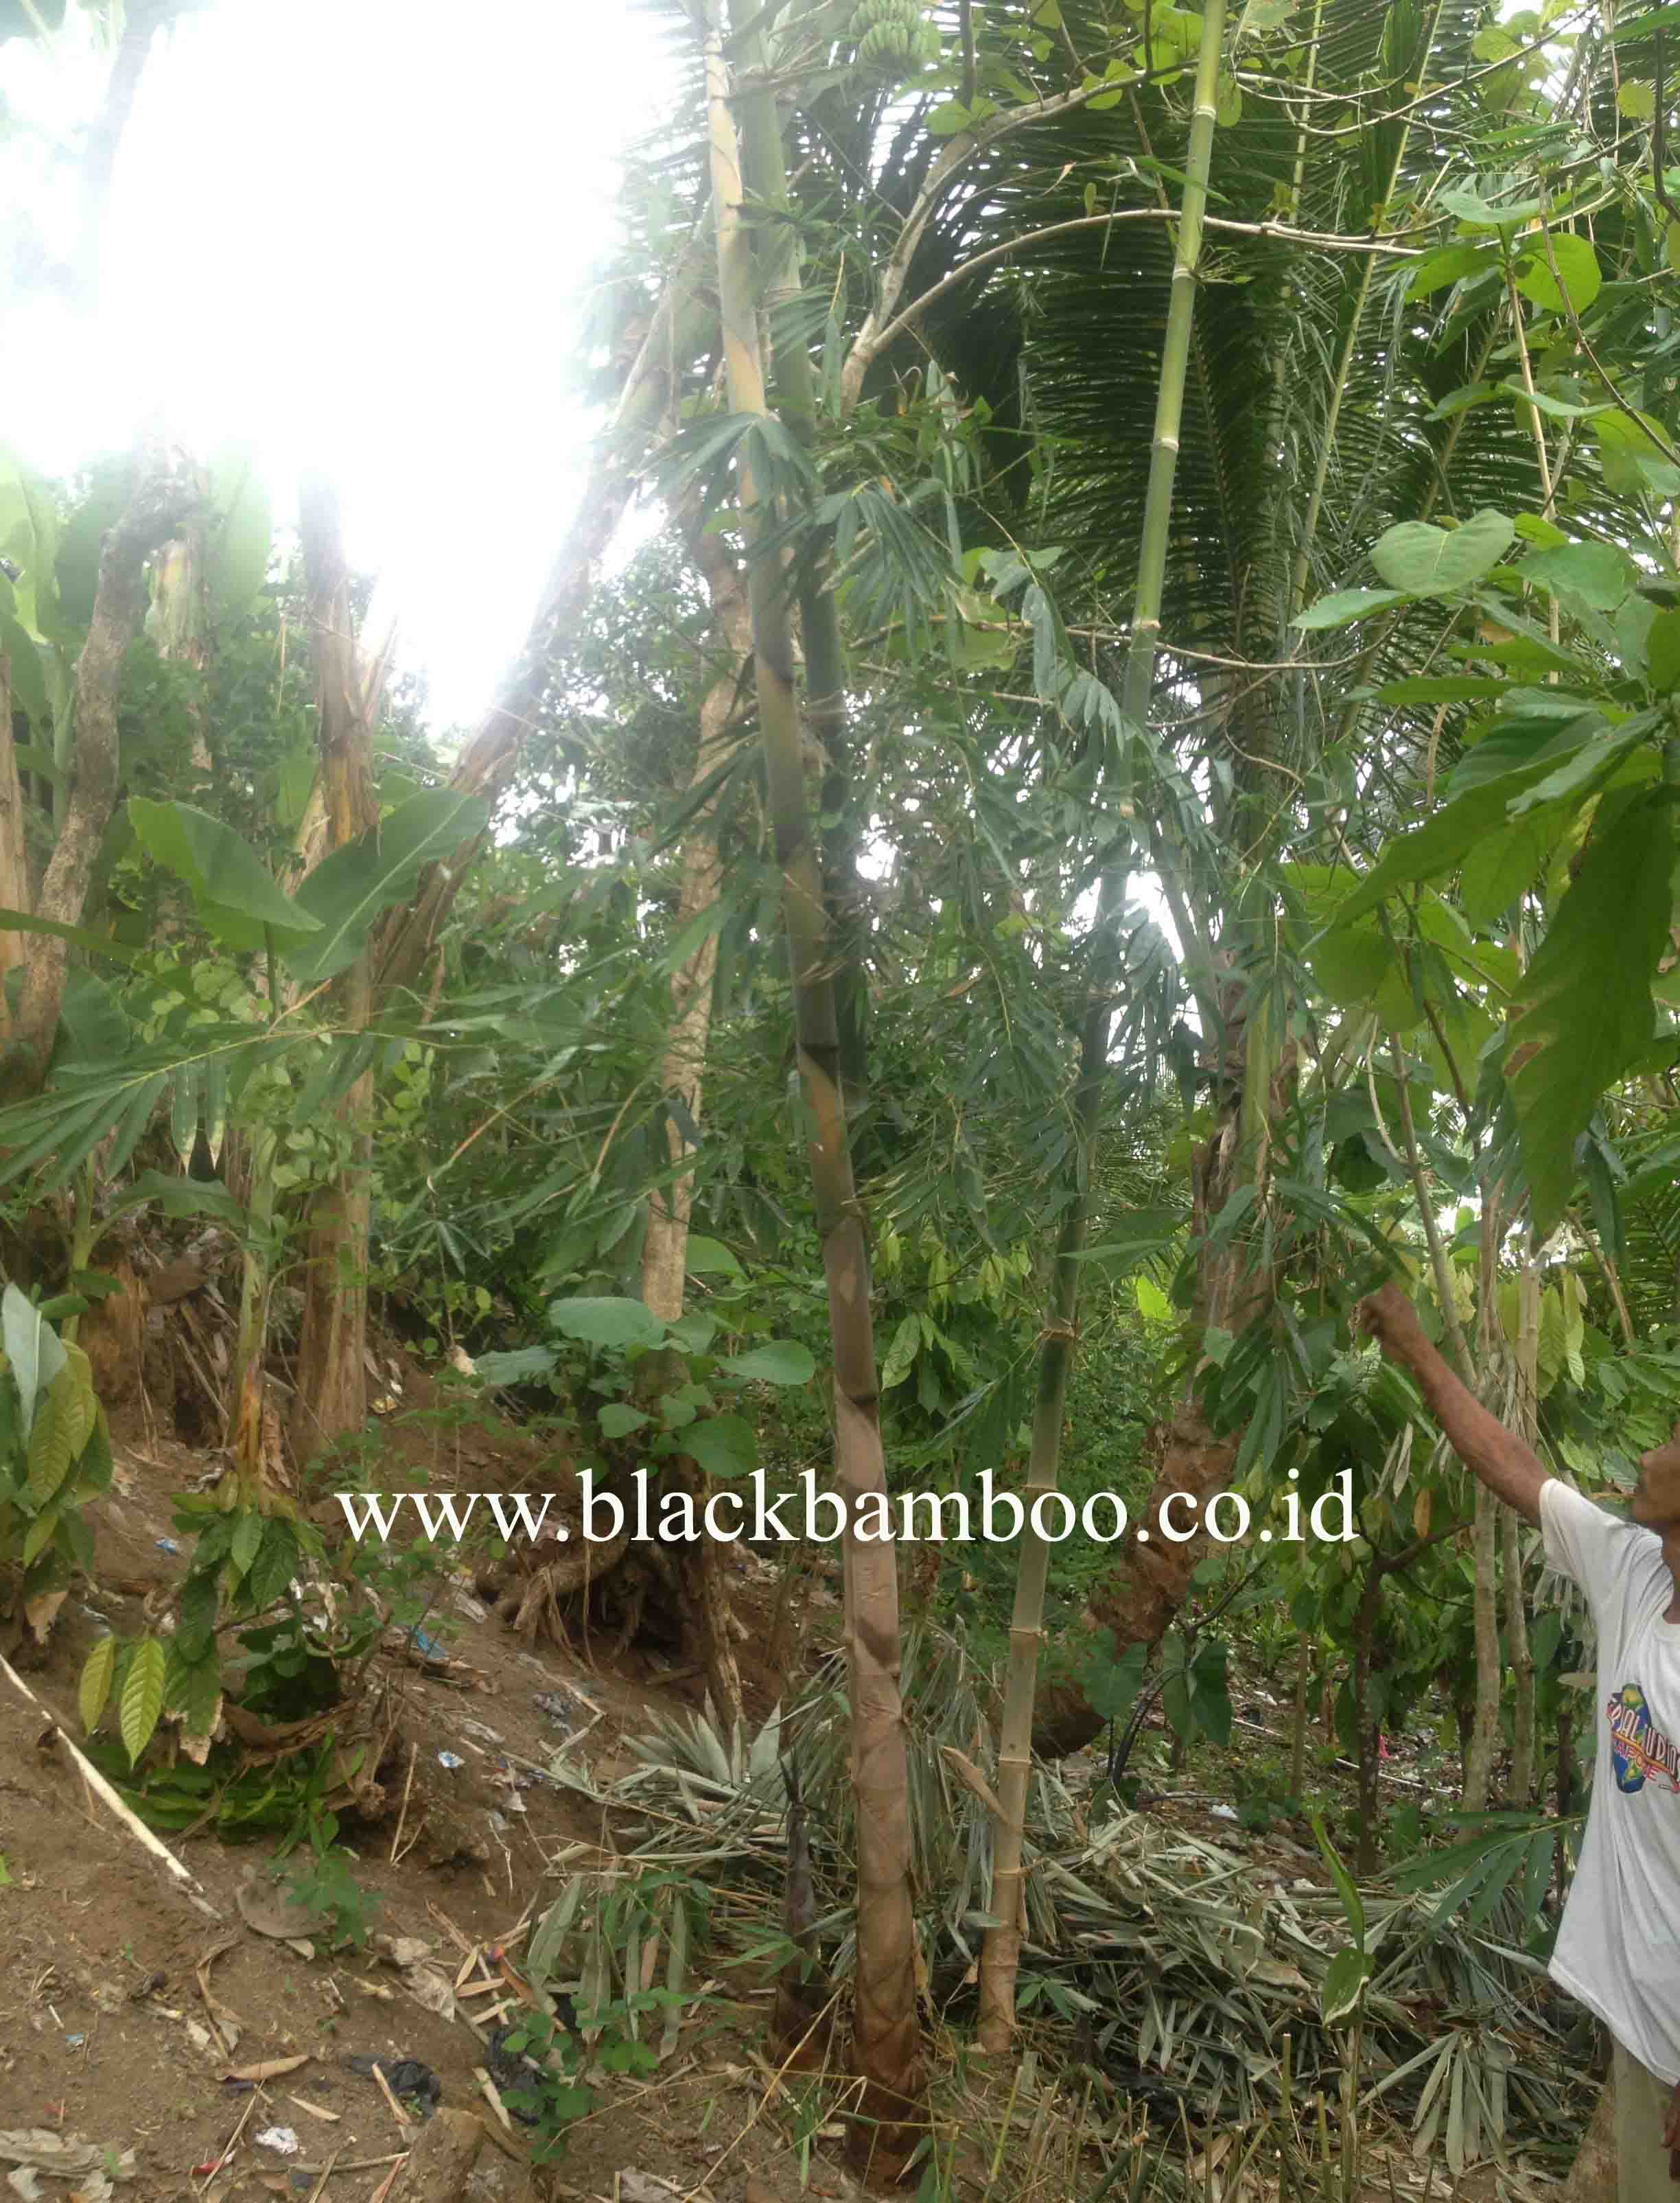 BAMBOO REPLANTATION